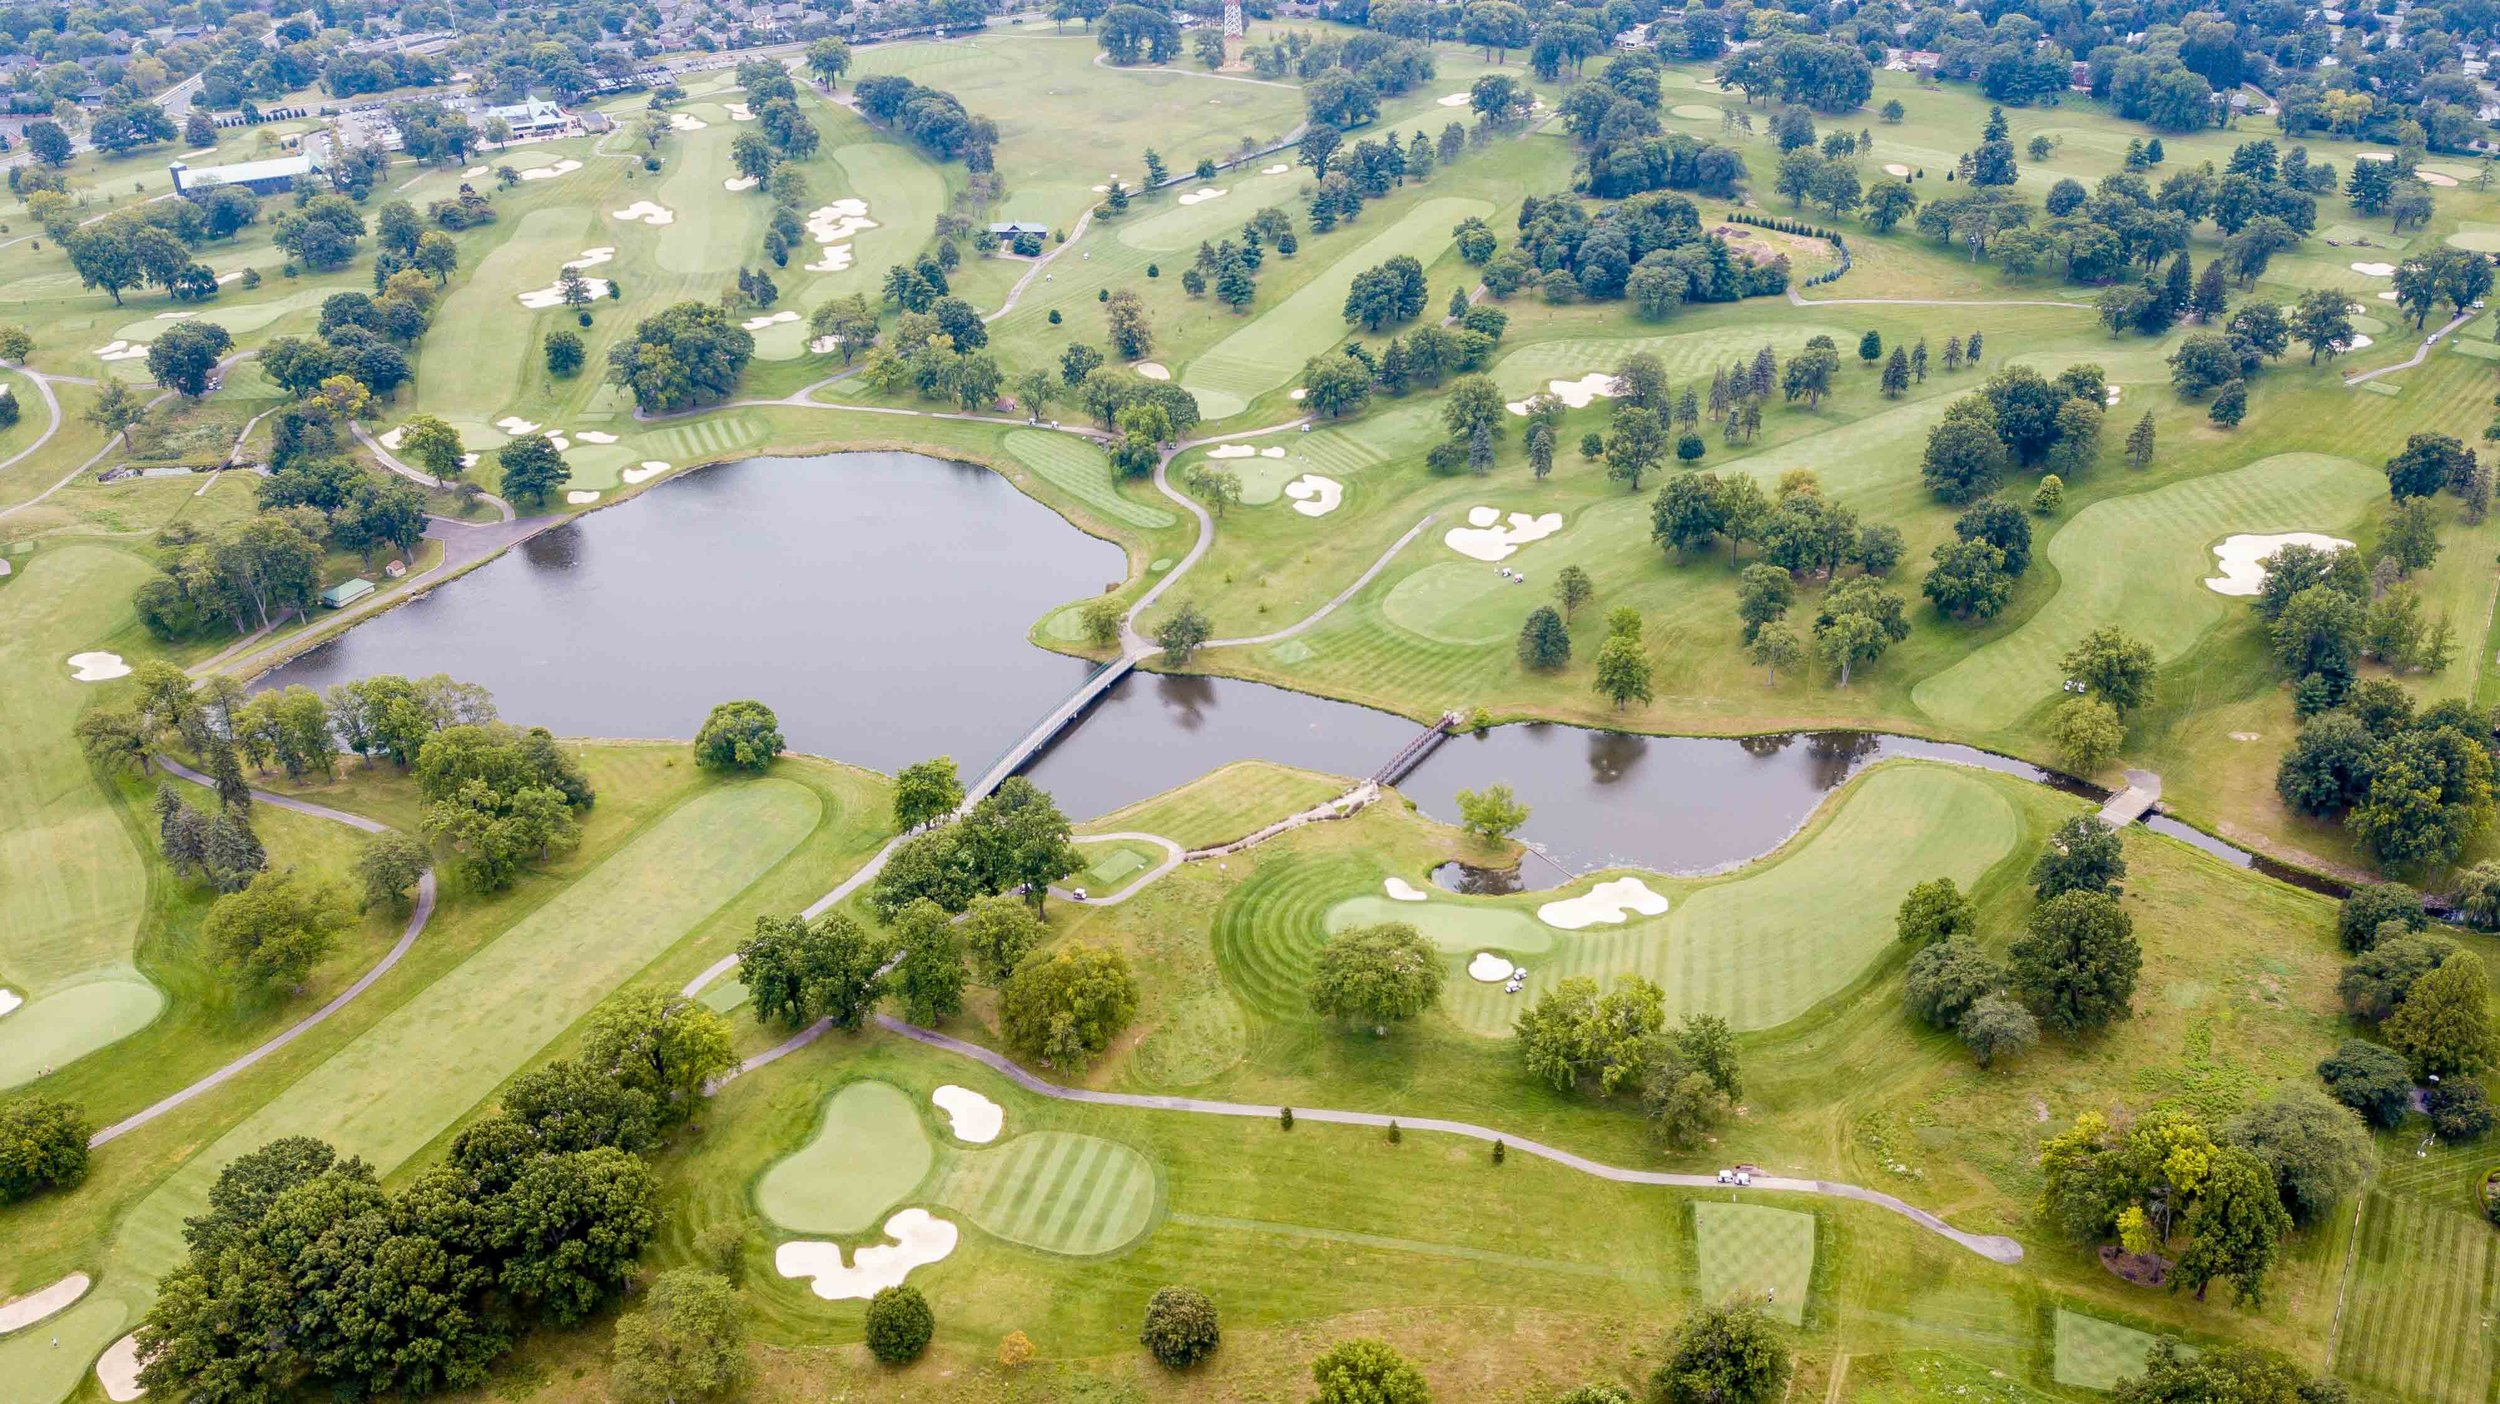 OSU Golf Courses1-34.jpg